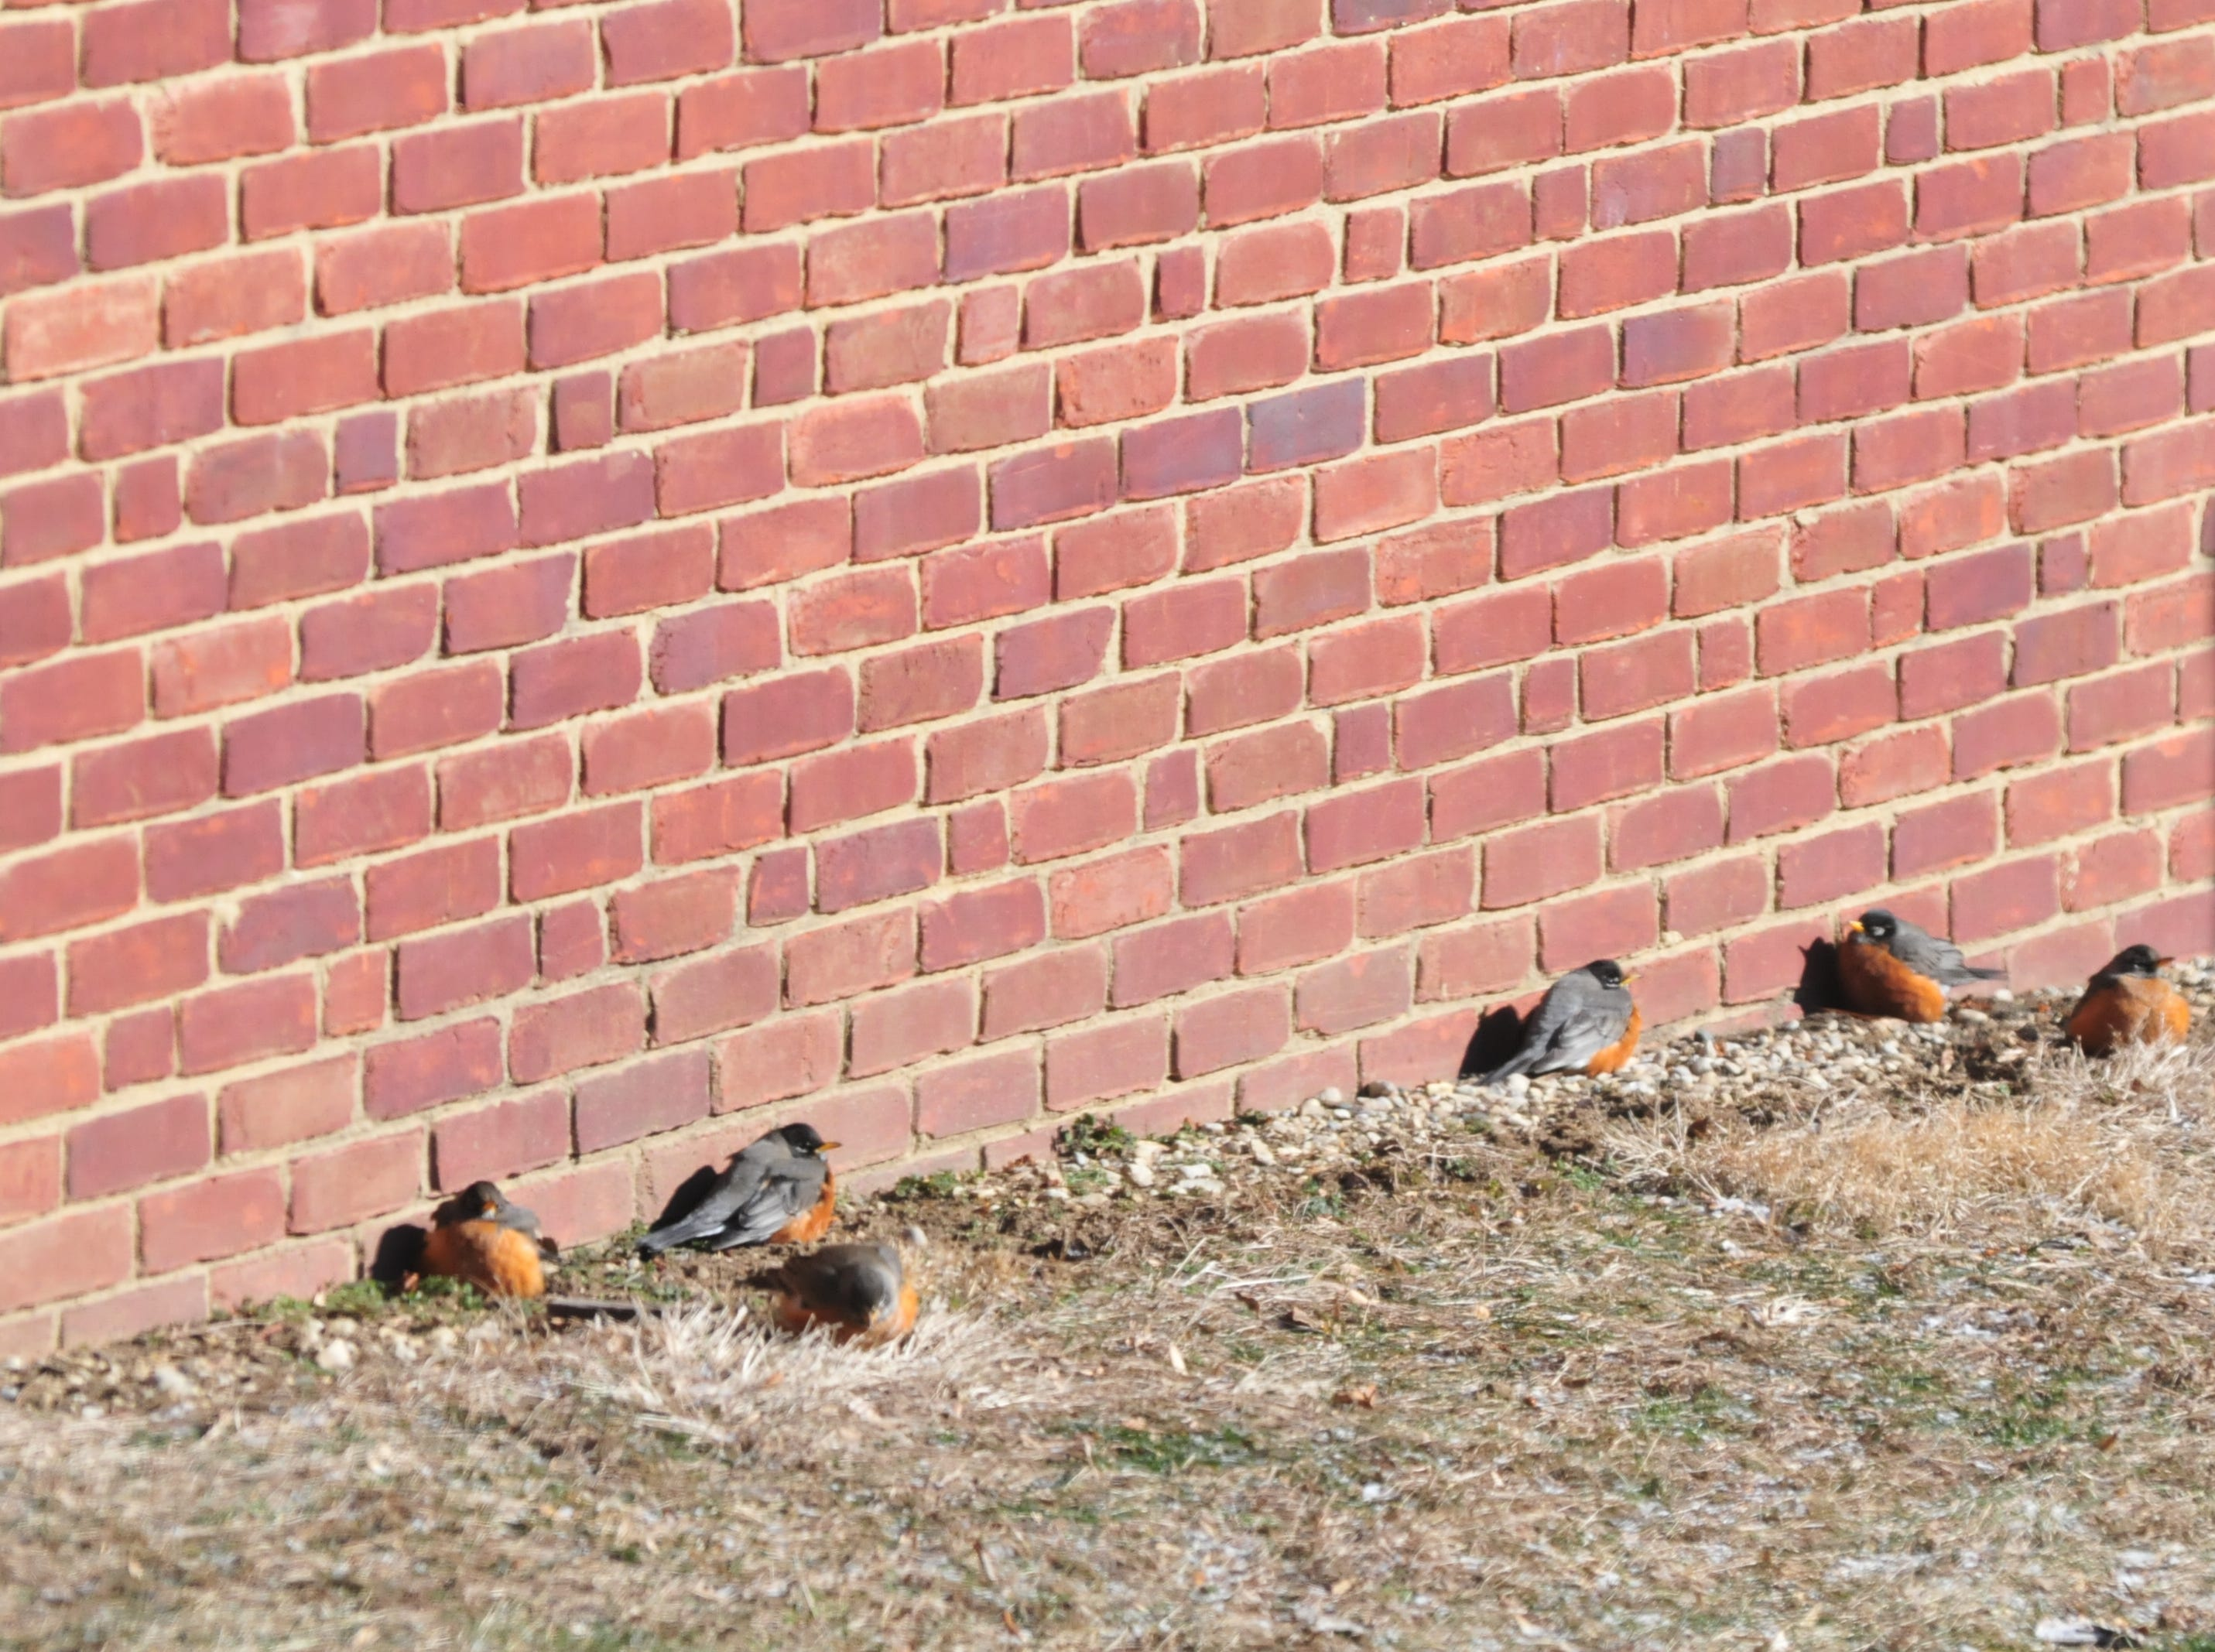 Birds sit in the sun near a brick wall Wednesday at Earlham College.